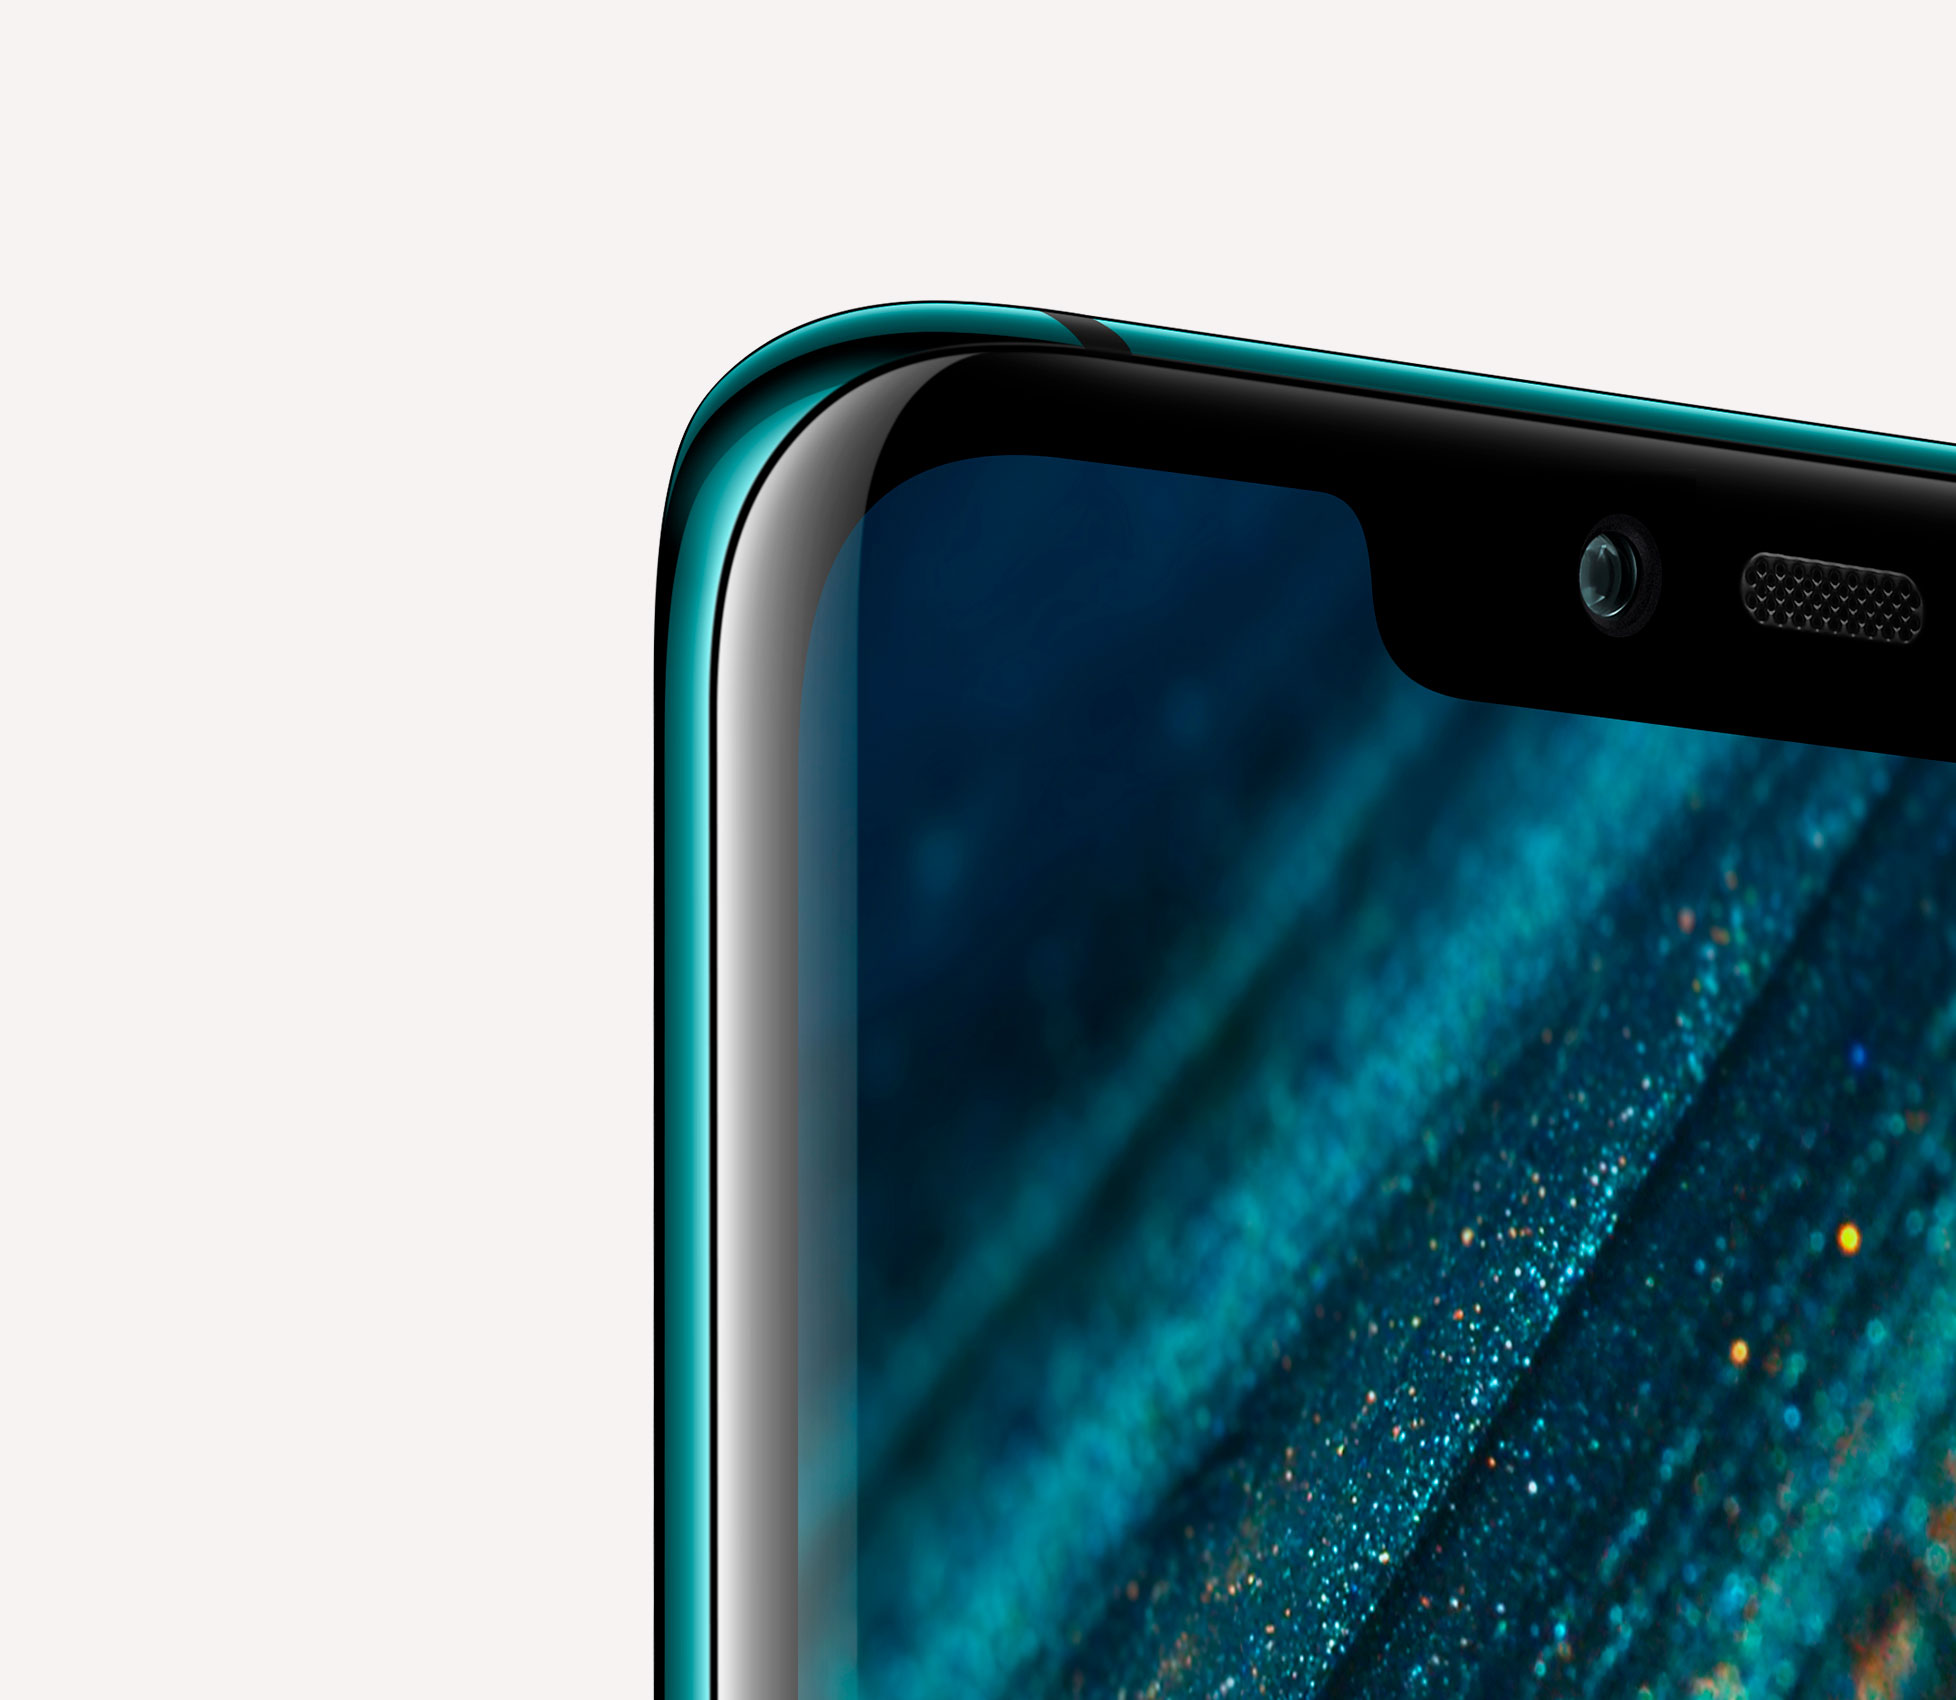 Huawei Mate 20 Pro: Make Smartphones Exciting Again